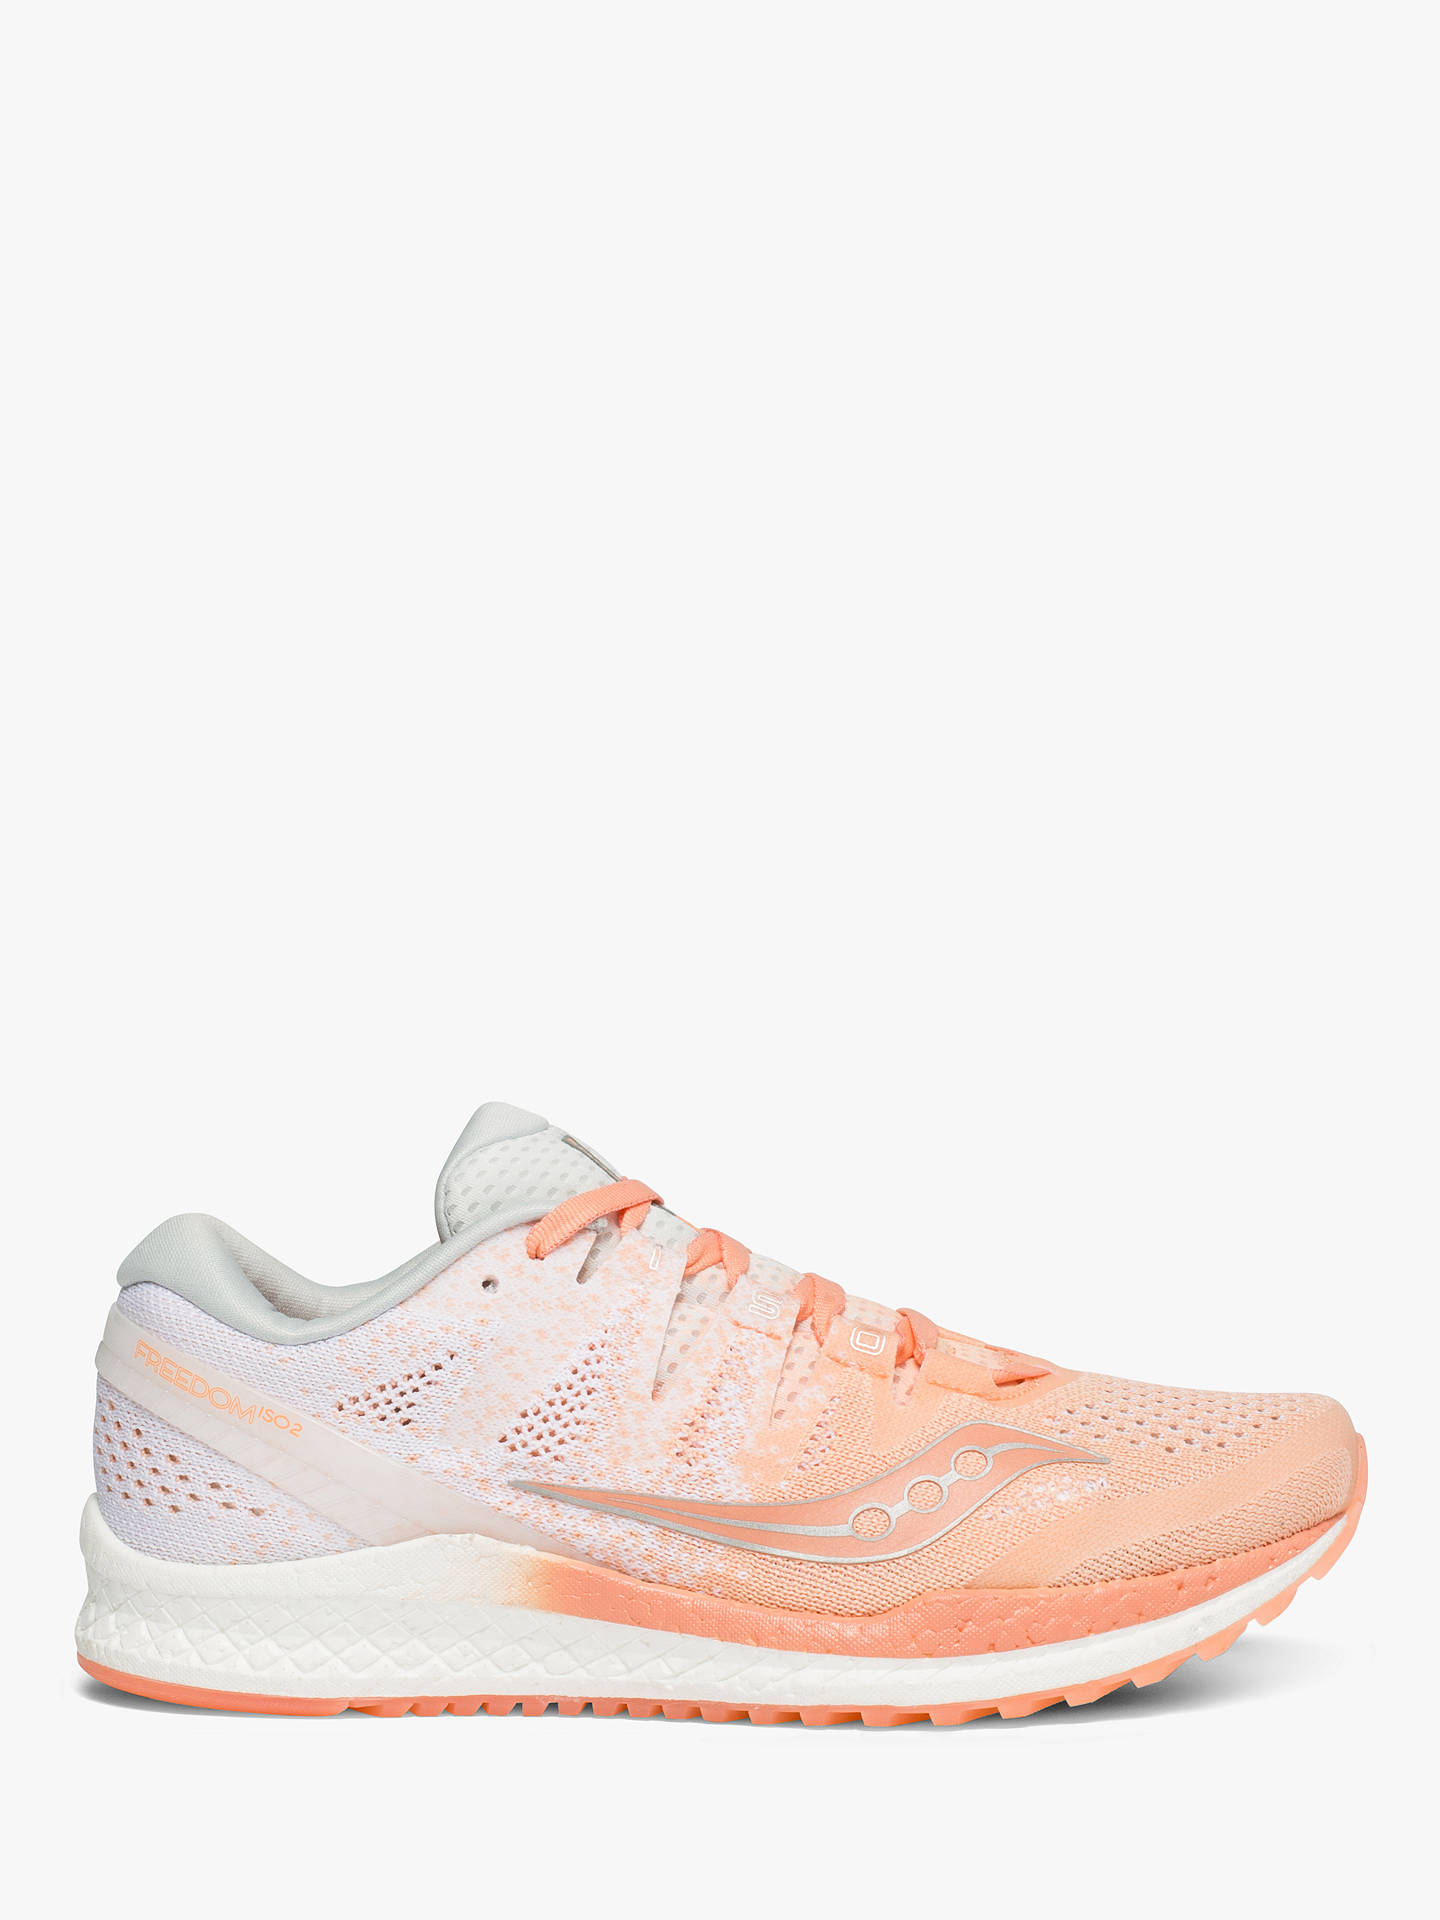 Saucony Boys S-Freedom ISO Running Shoes Trainers Sneakers Orange Sports